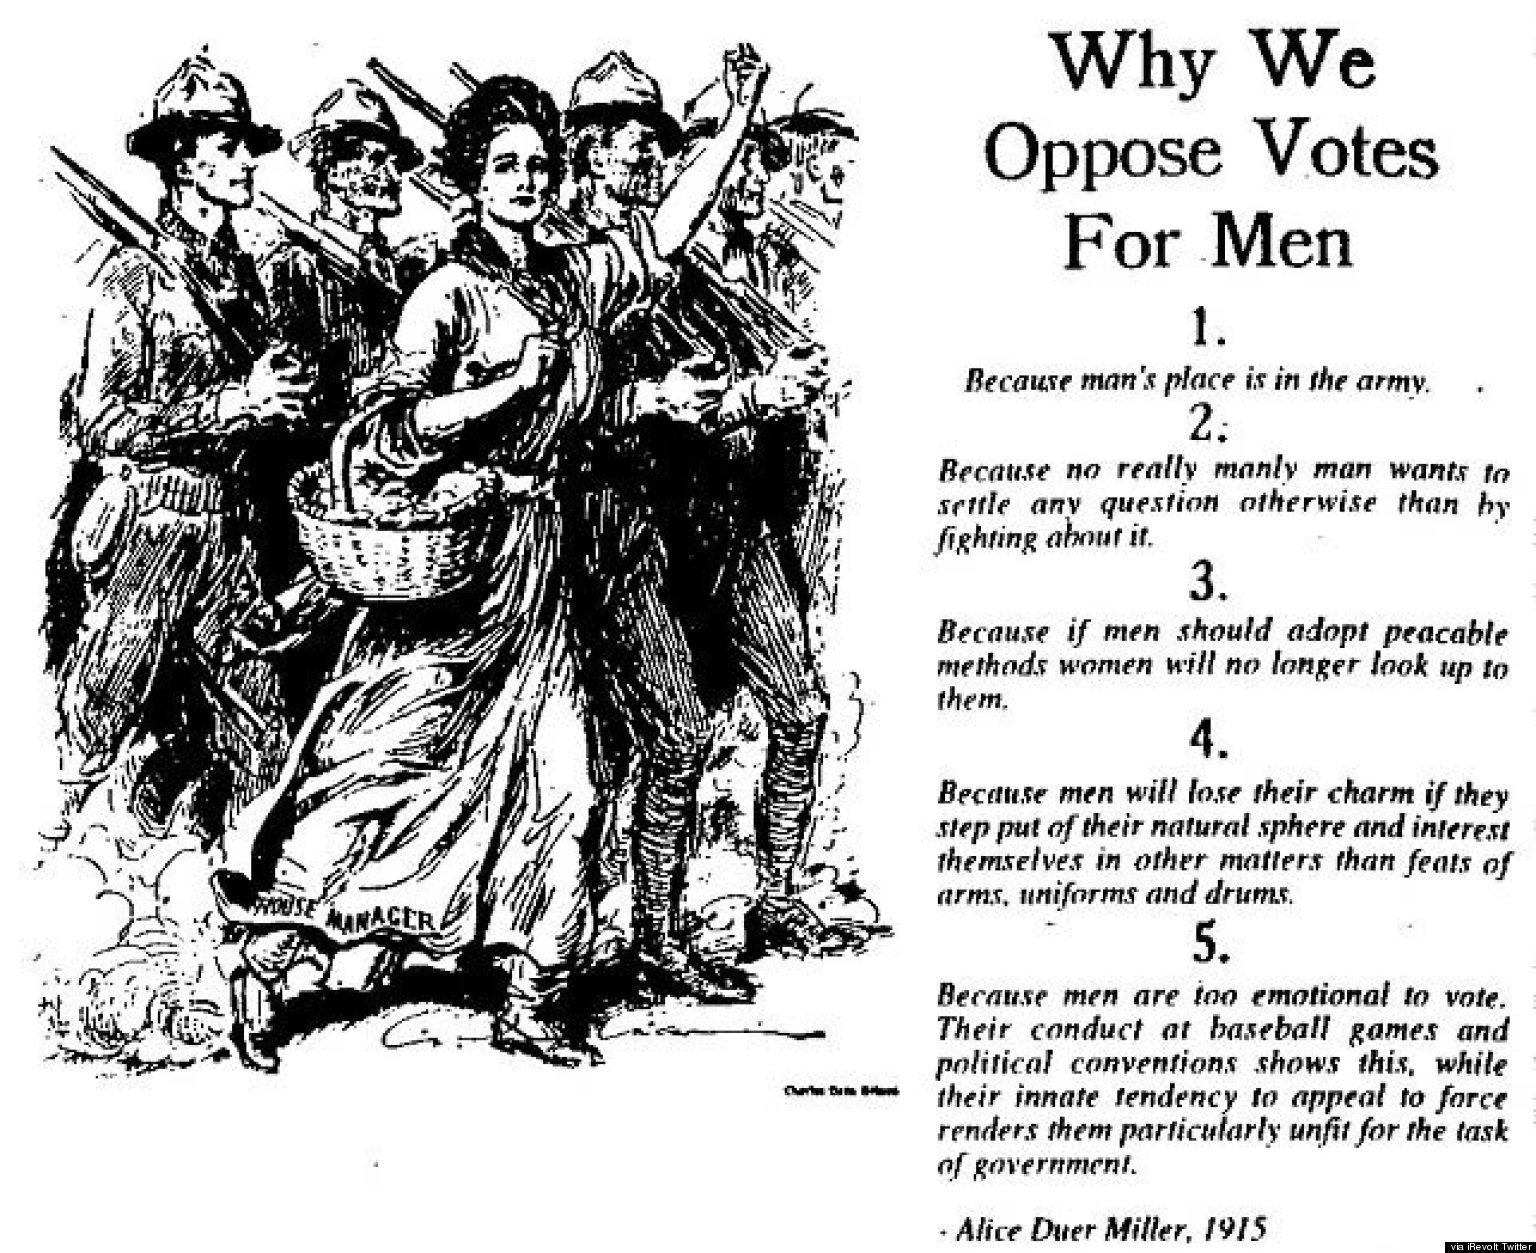 satirical essays on feminism I want a wife is a legendary feminist essay and one of the best-remembered pieces from the premiere issue of ms magazine.